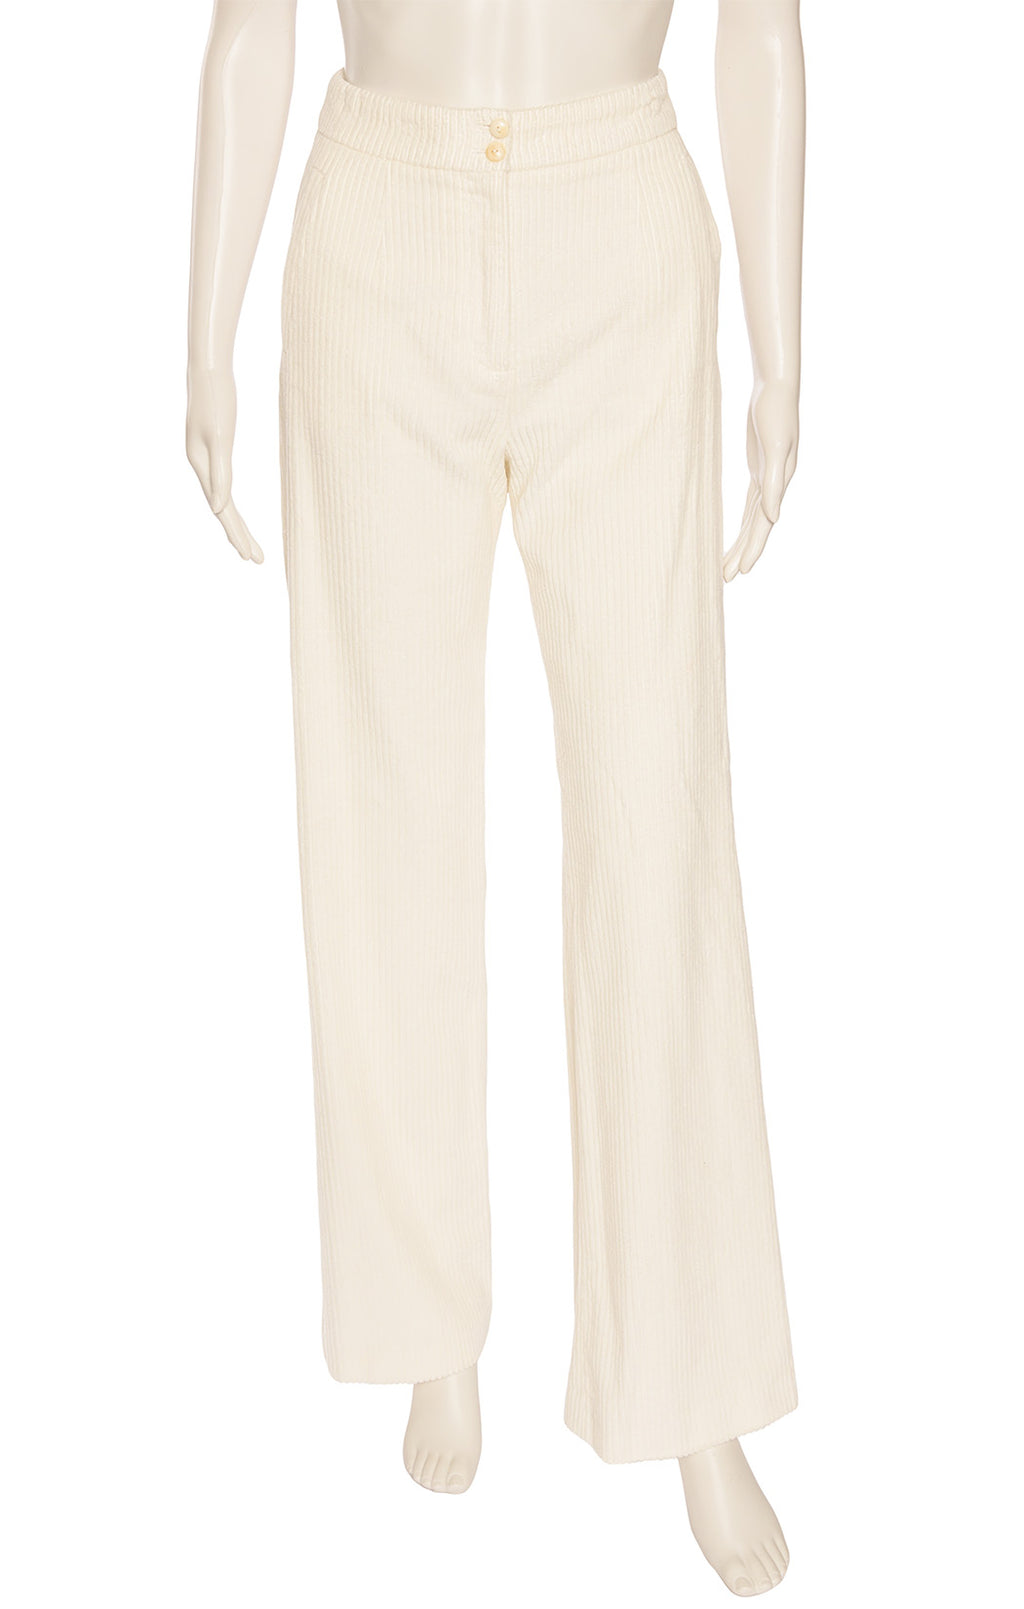 Ivory corduroy pant with zipper front, side slit pockets and back slit pockets